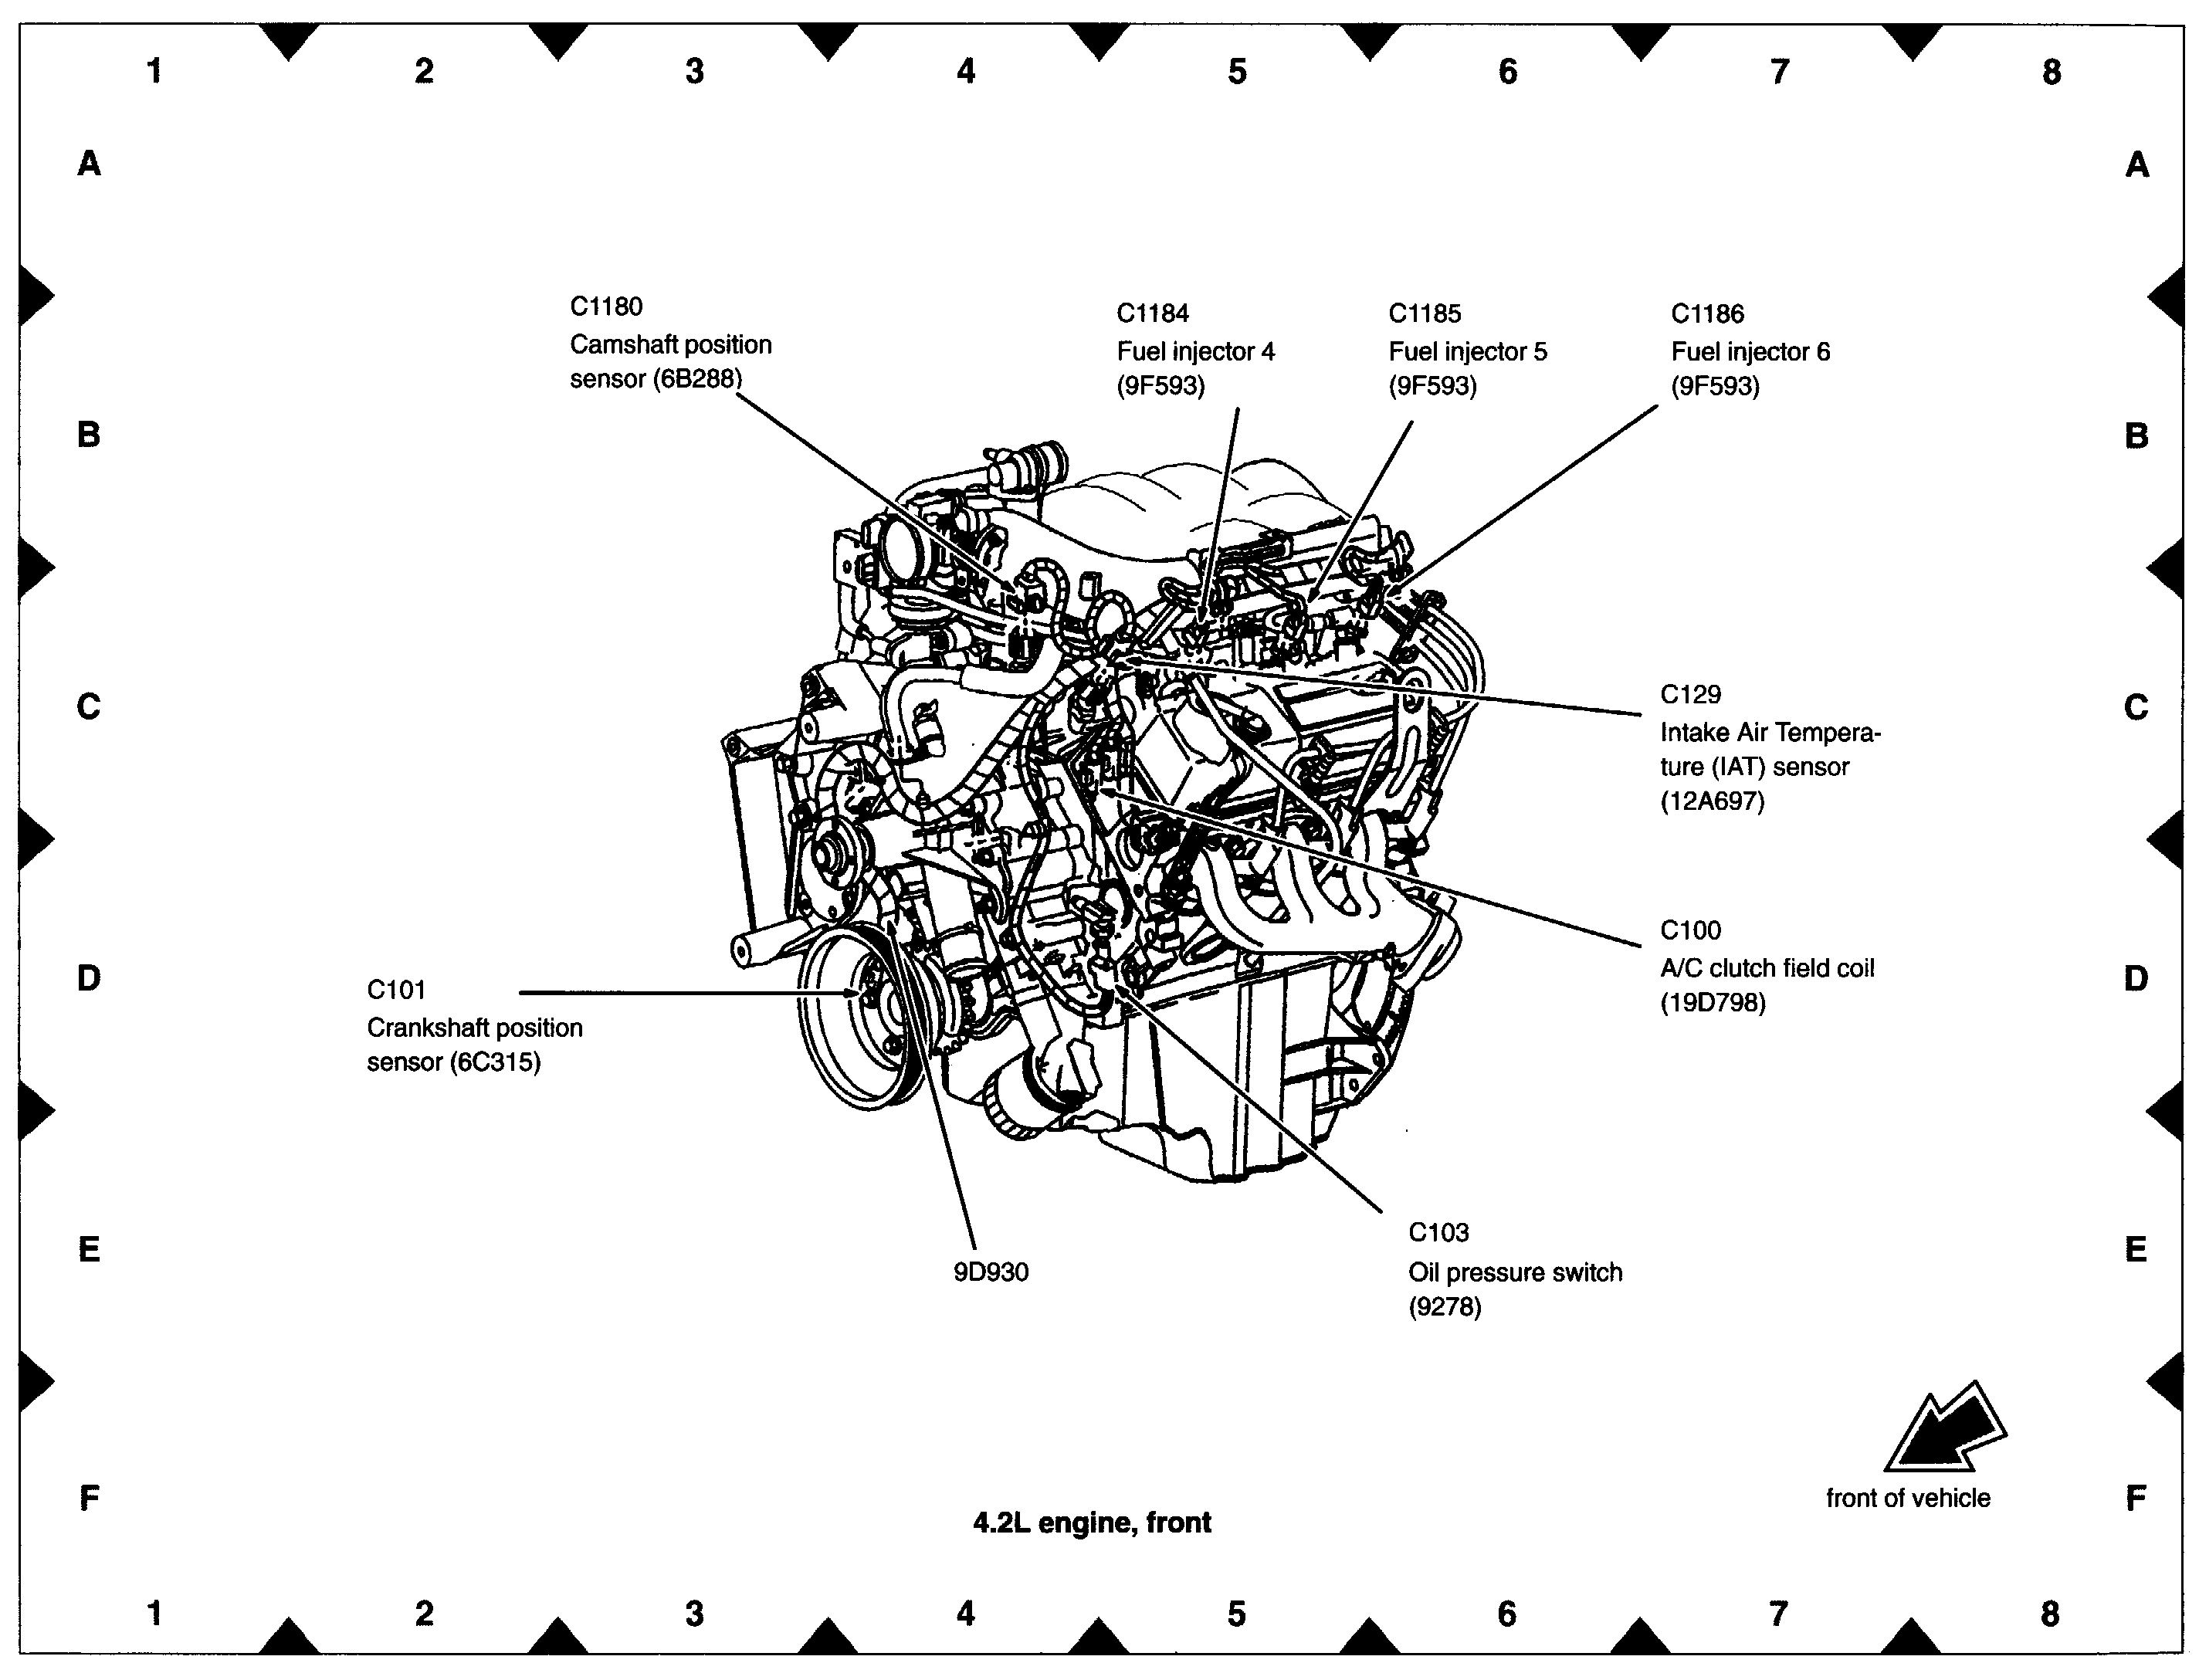 Camshaft Position Sensor Location: Where Is It Located Exactly on